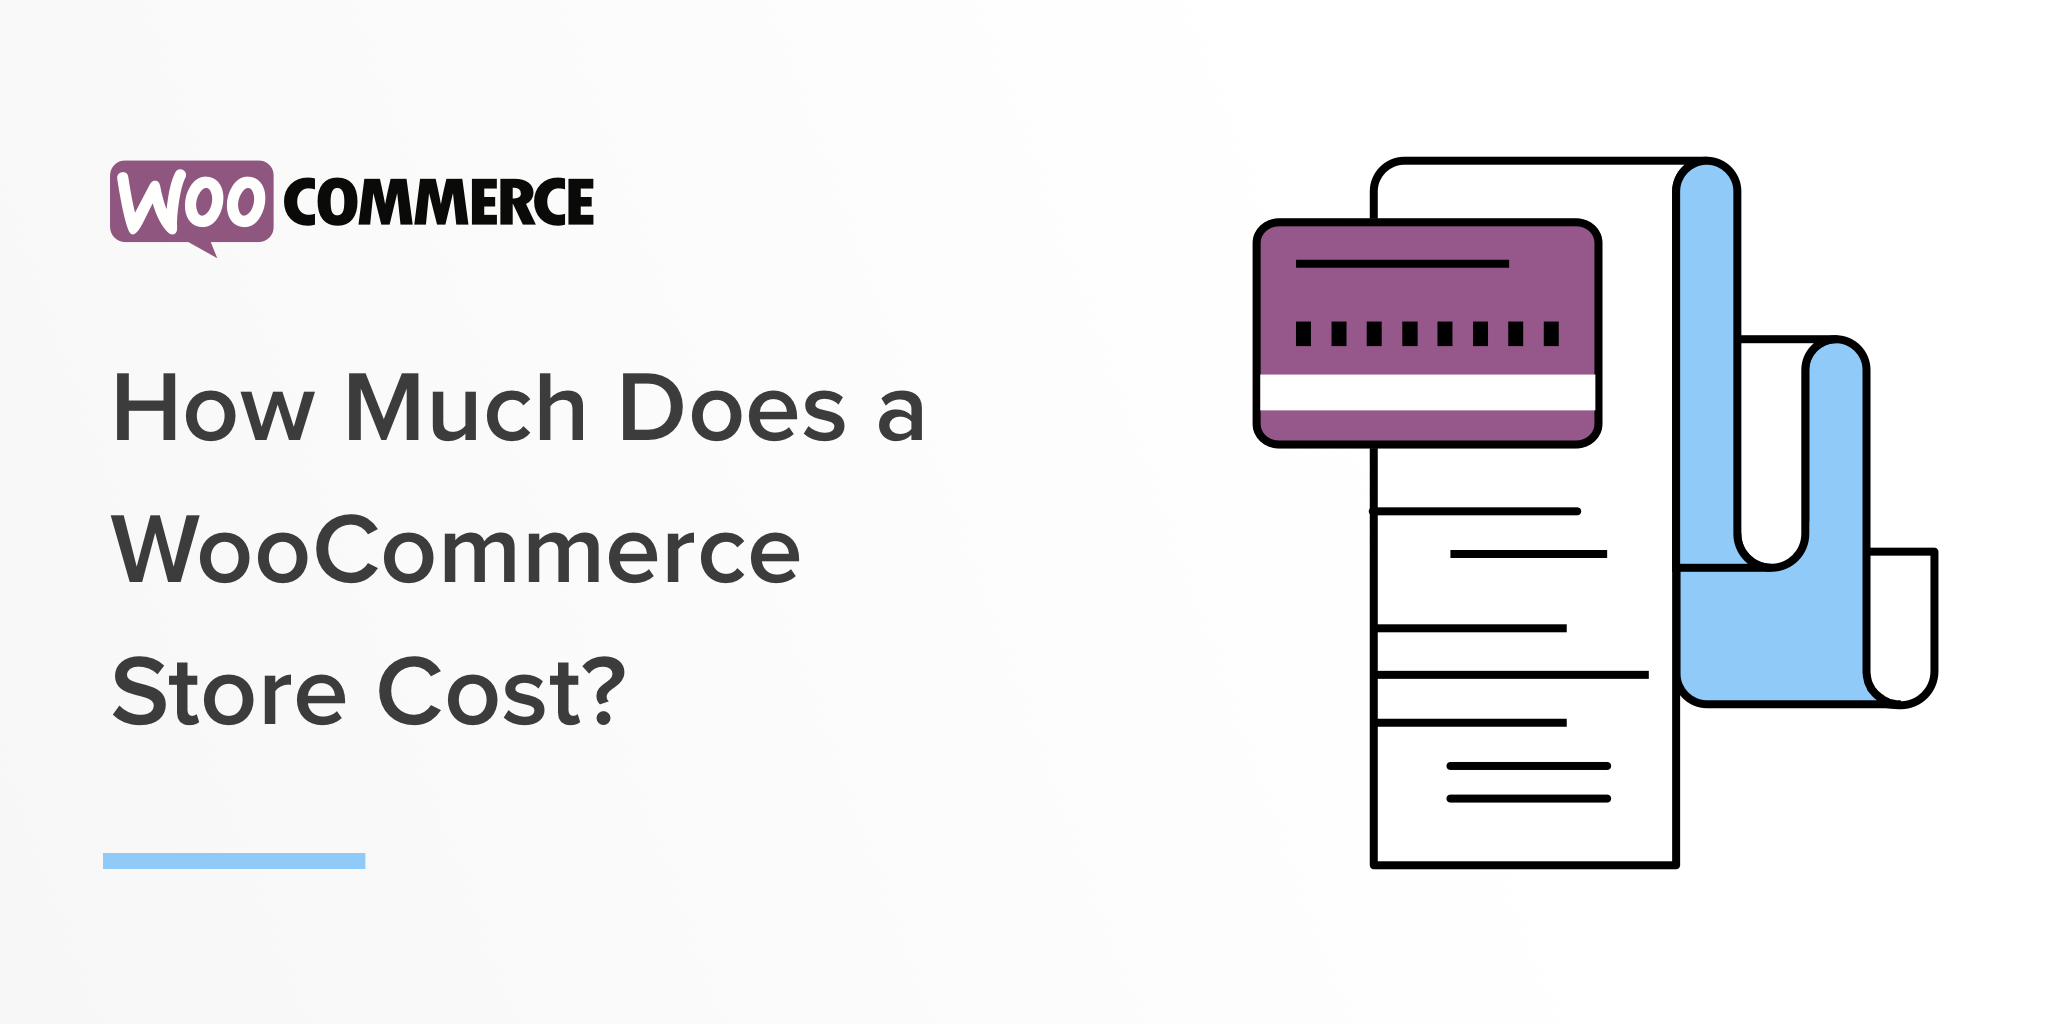 WooCommerce Pricing: How Much Does It Cost To Run A Store?